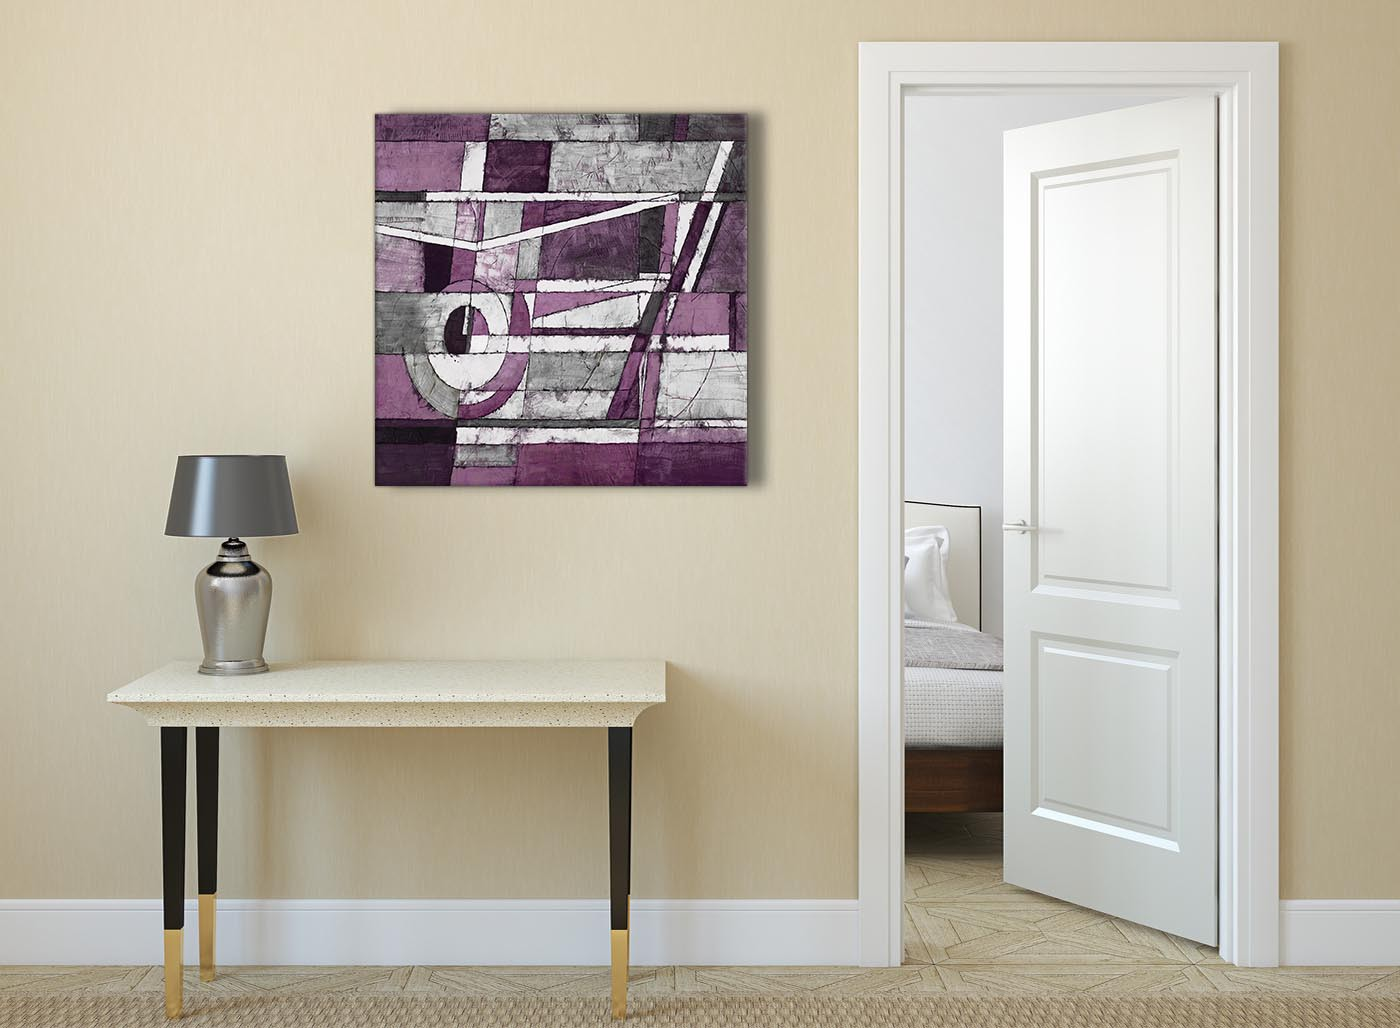 ... Abstract Living Room Canvas Wall Art Accessories 1s406l   79cm Square  Print. Item Number 1s406l